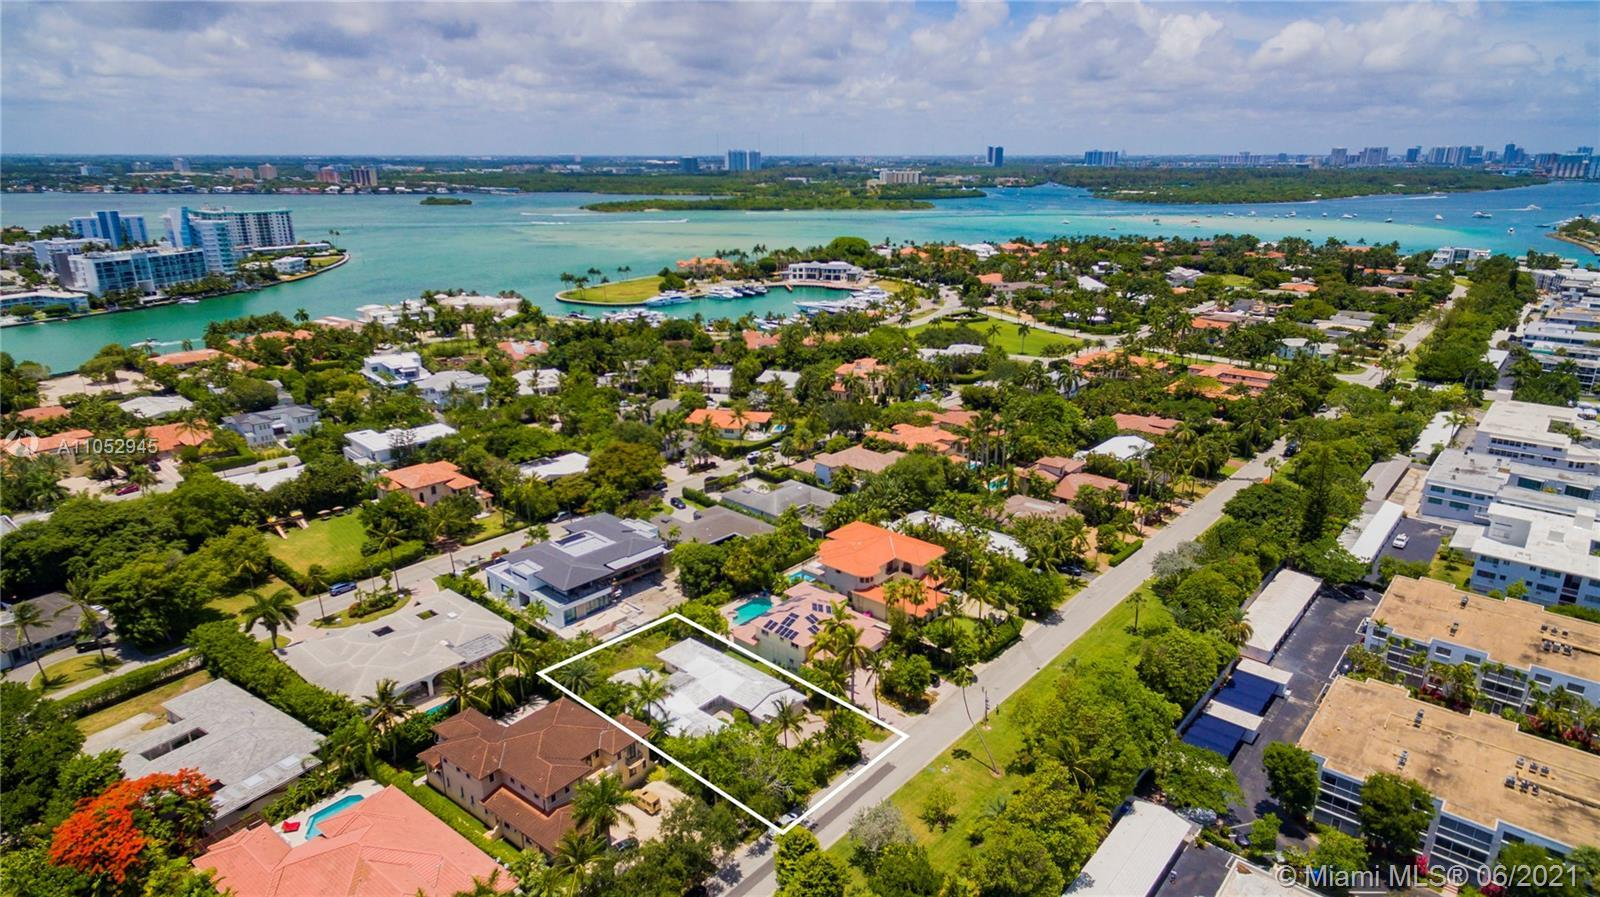 Rare opportunity to build or renovate your dream home in one of South Florida's most exclusive gated